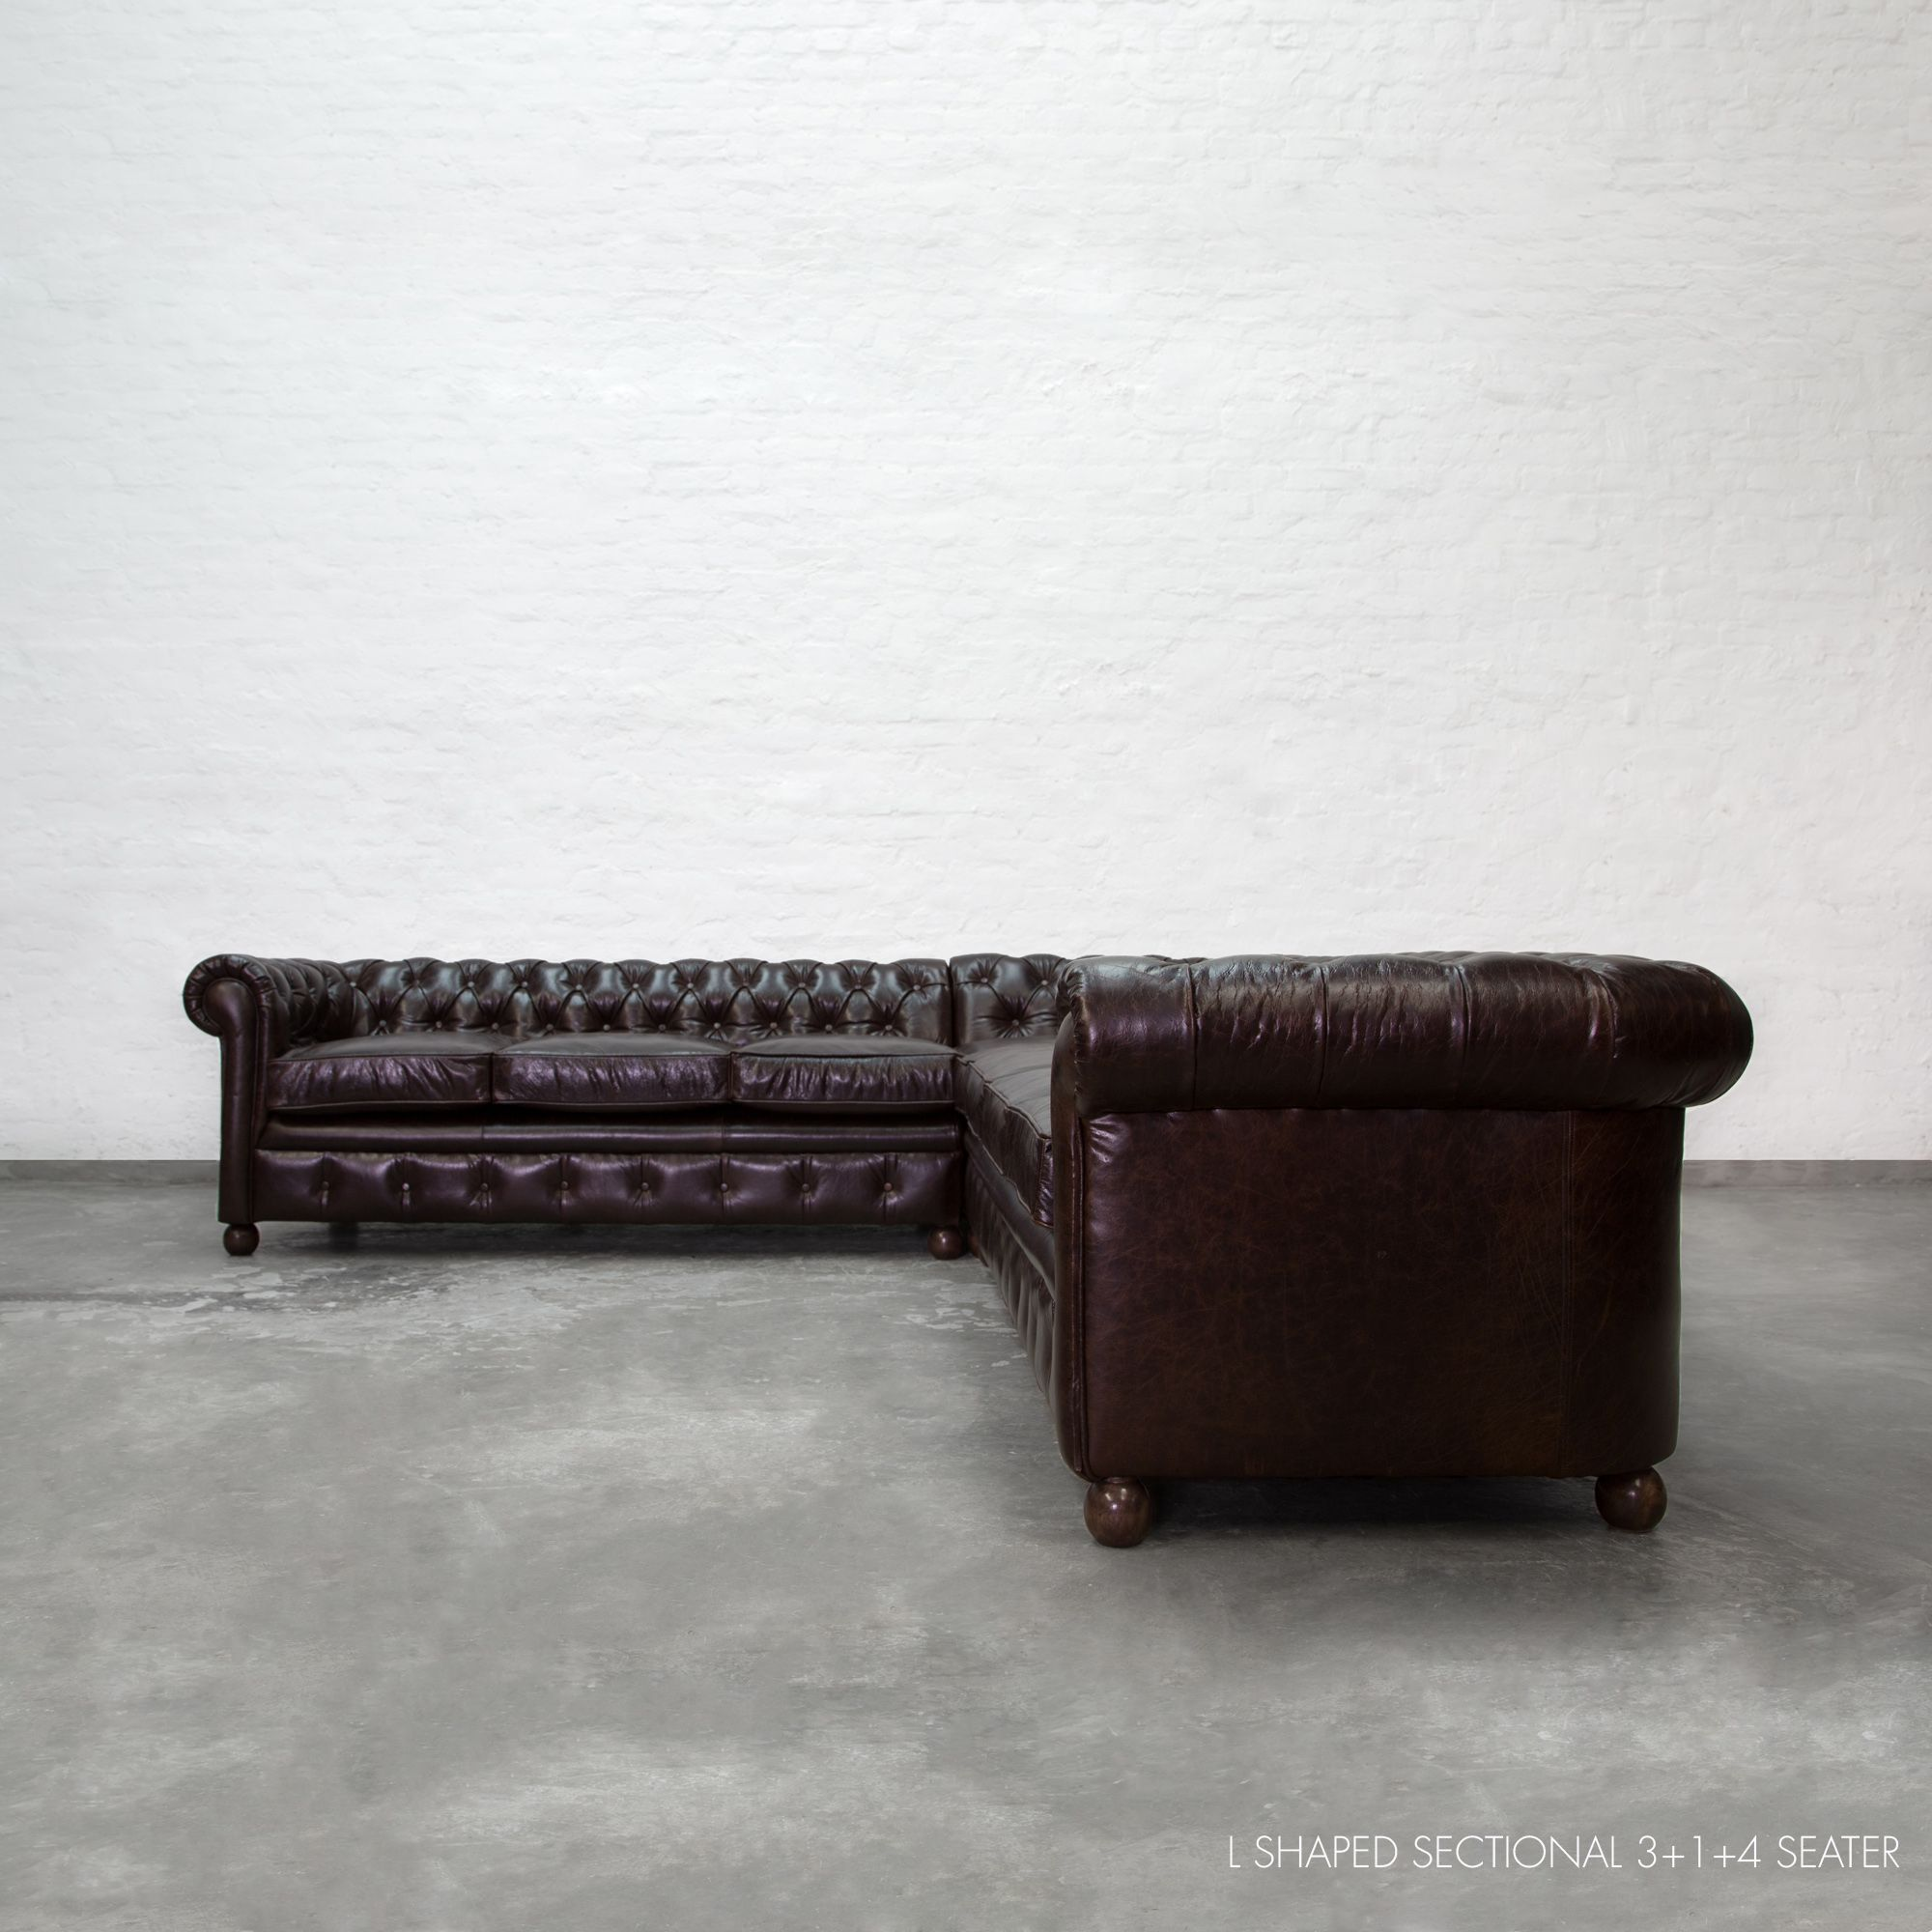 L Shaped Chesterfield Sectional 3 +1+ 4 Seater